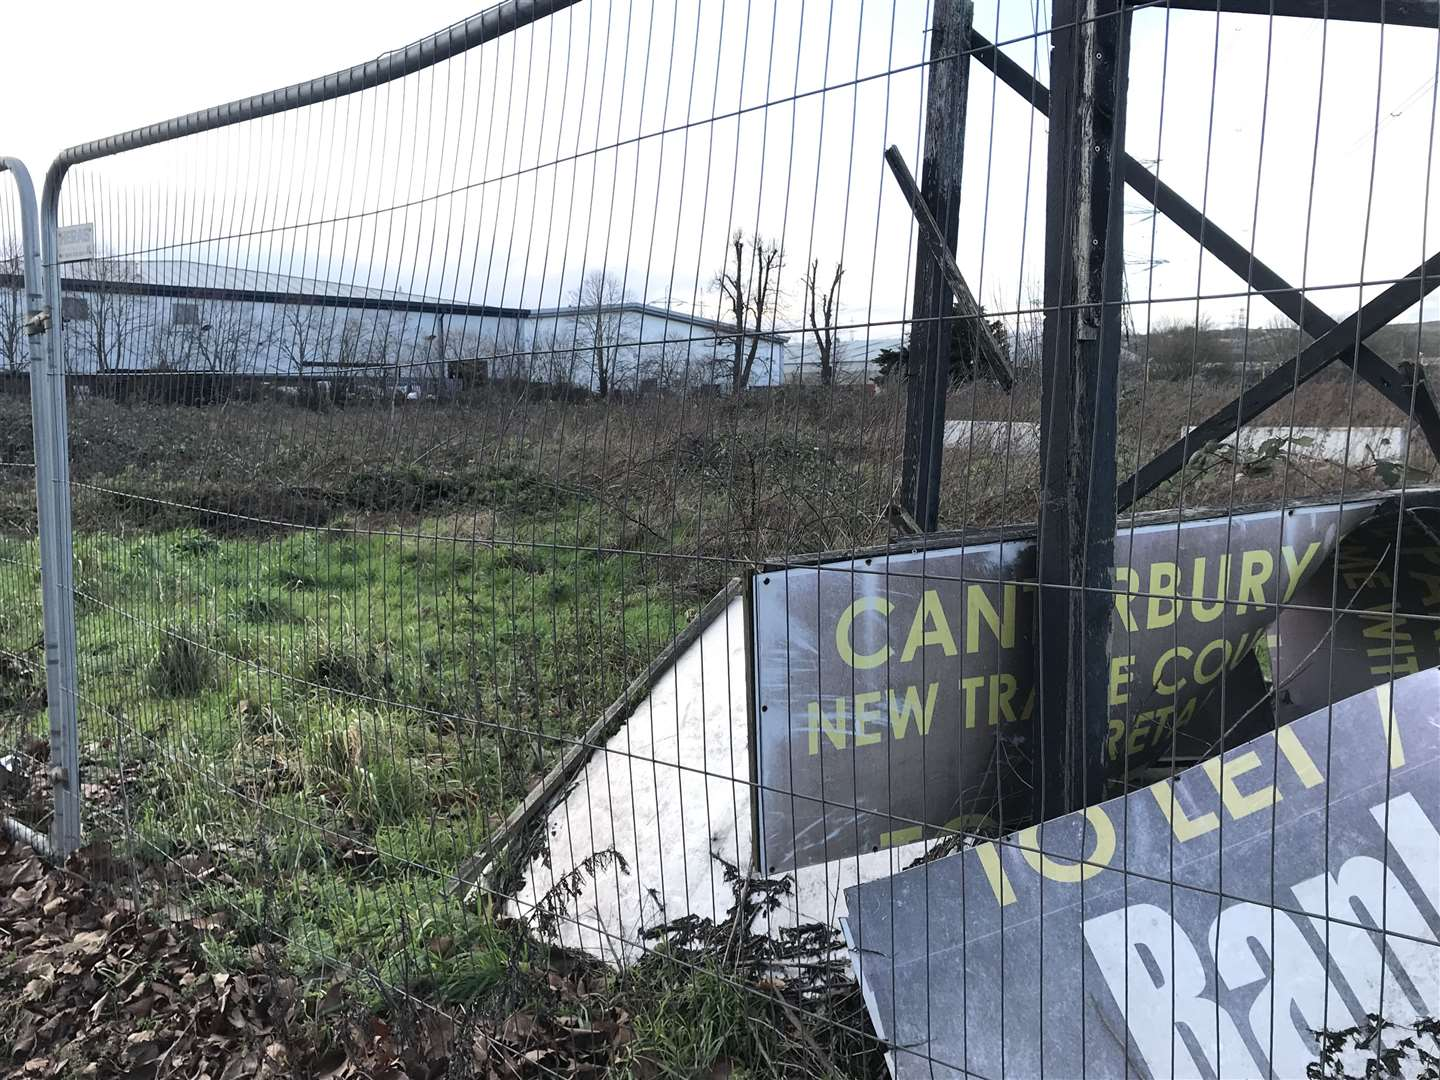 The site, which used to be part of the Southern Water sewage works, has long been a blot on the city's landscape